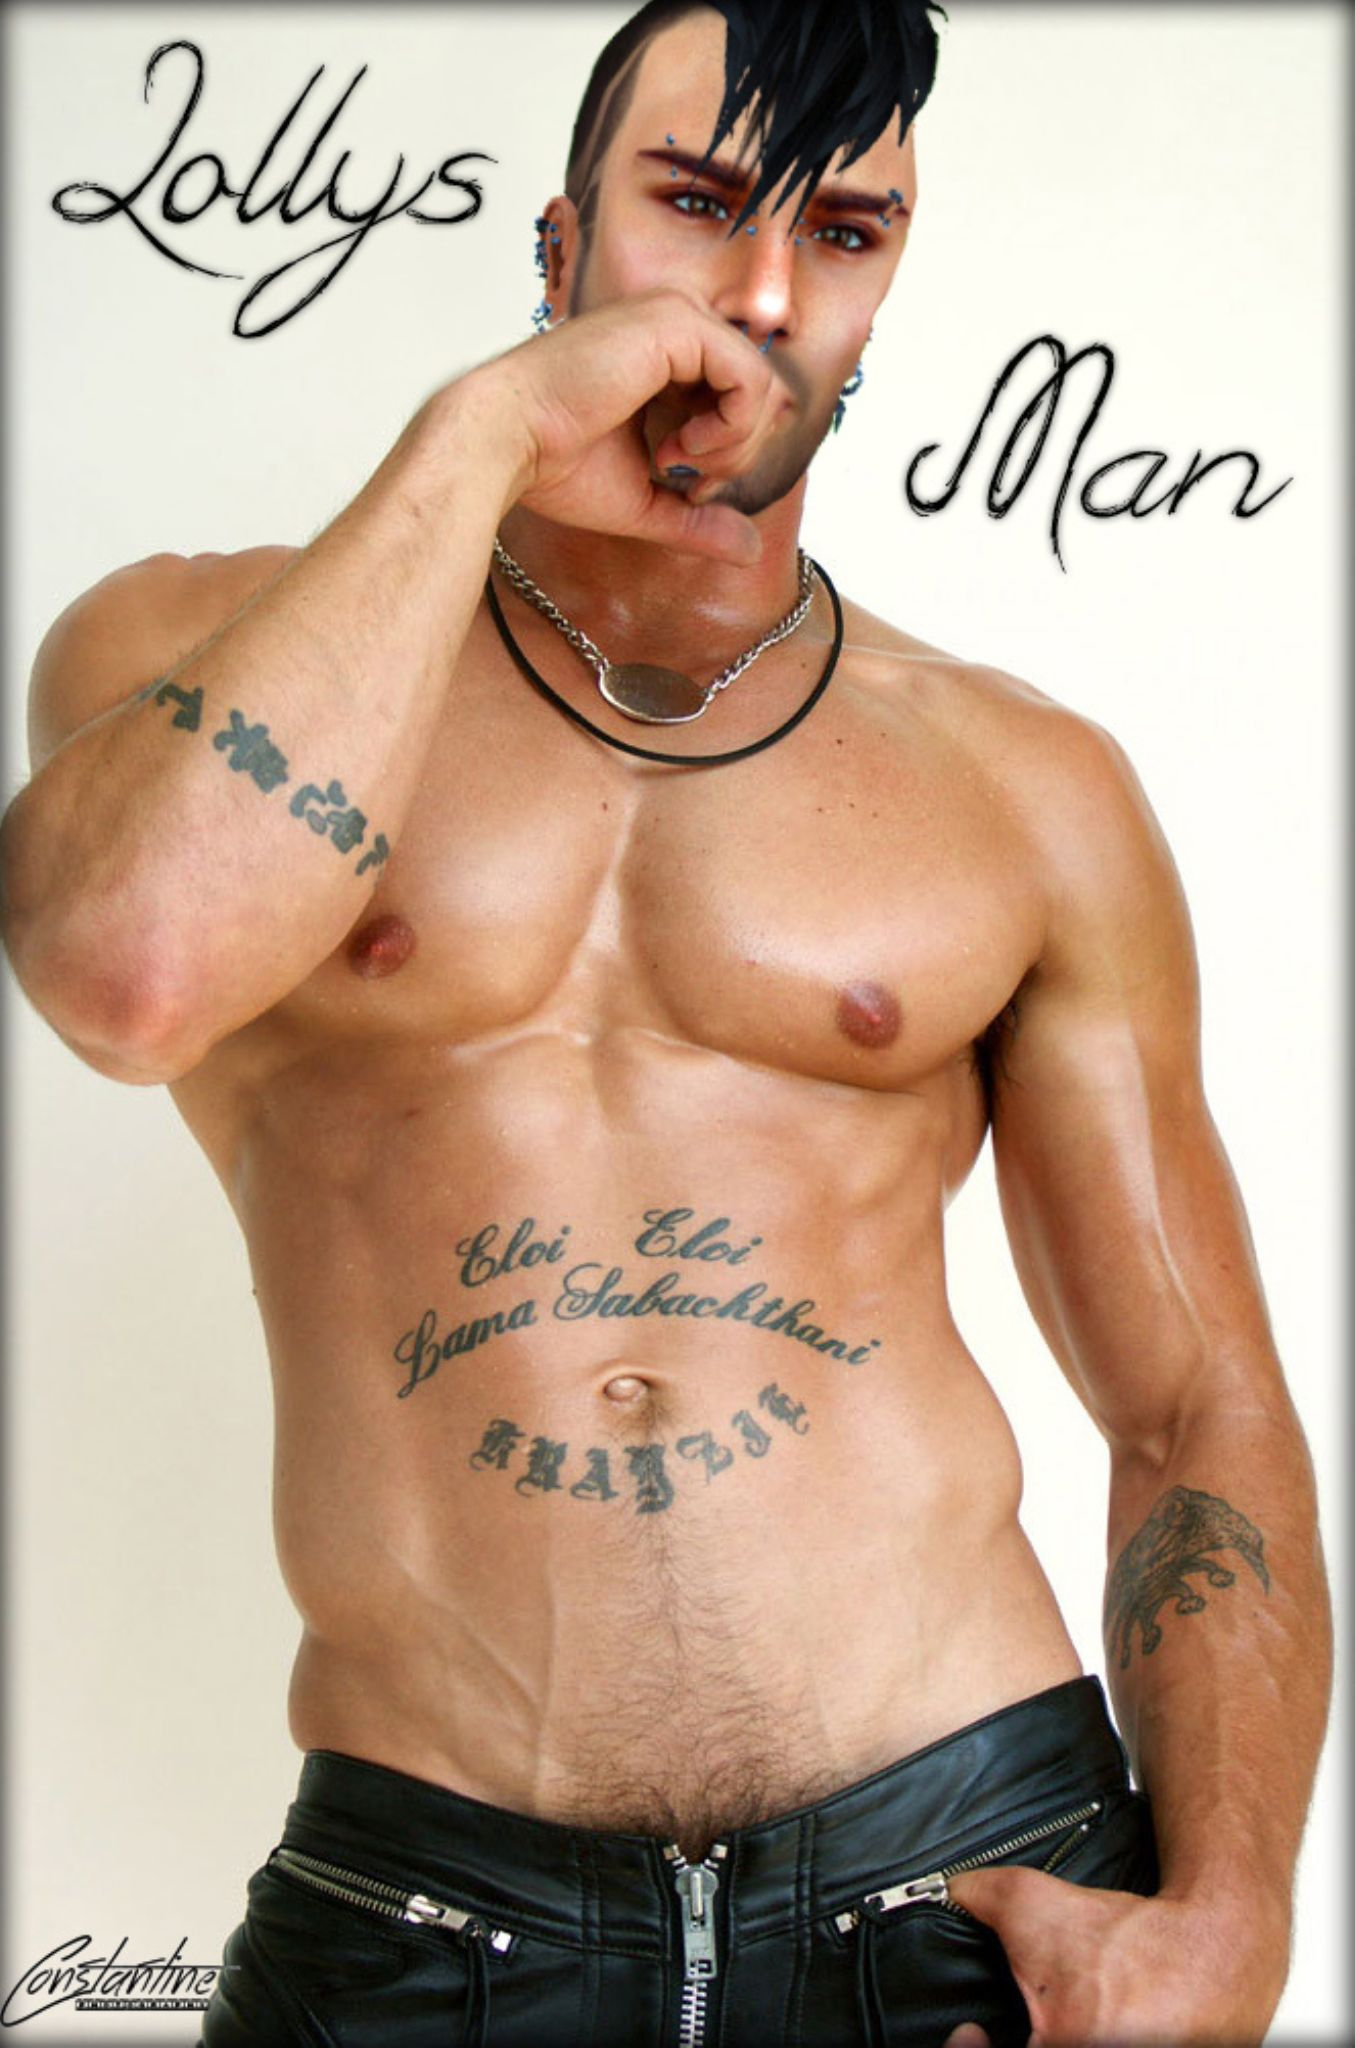 Lolly's Man 2 by Wrath Constantine